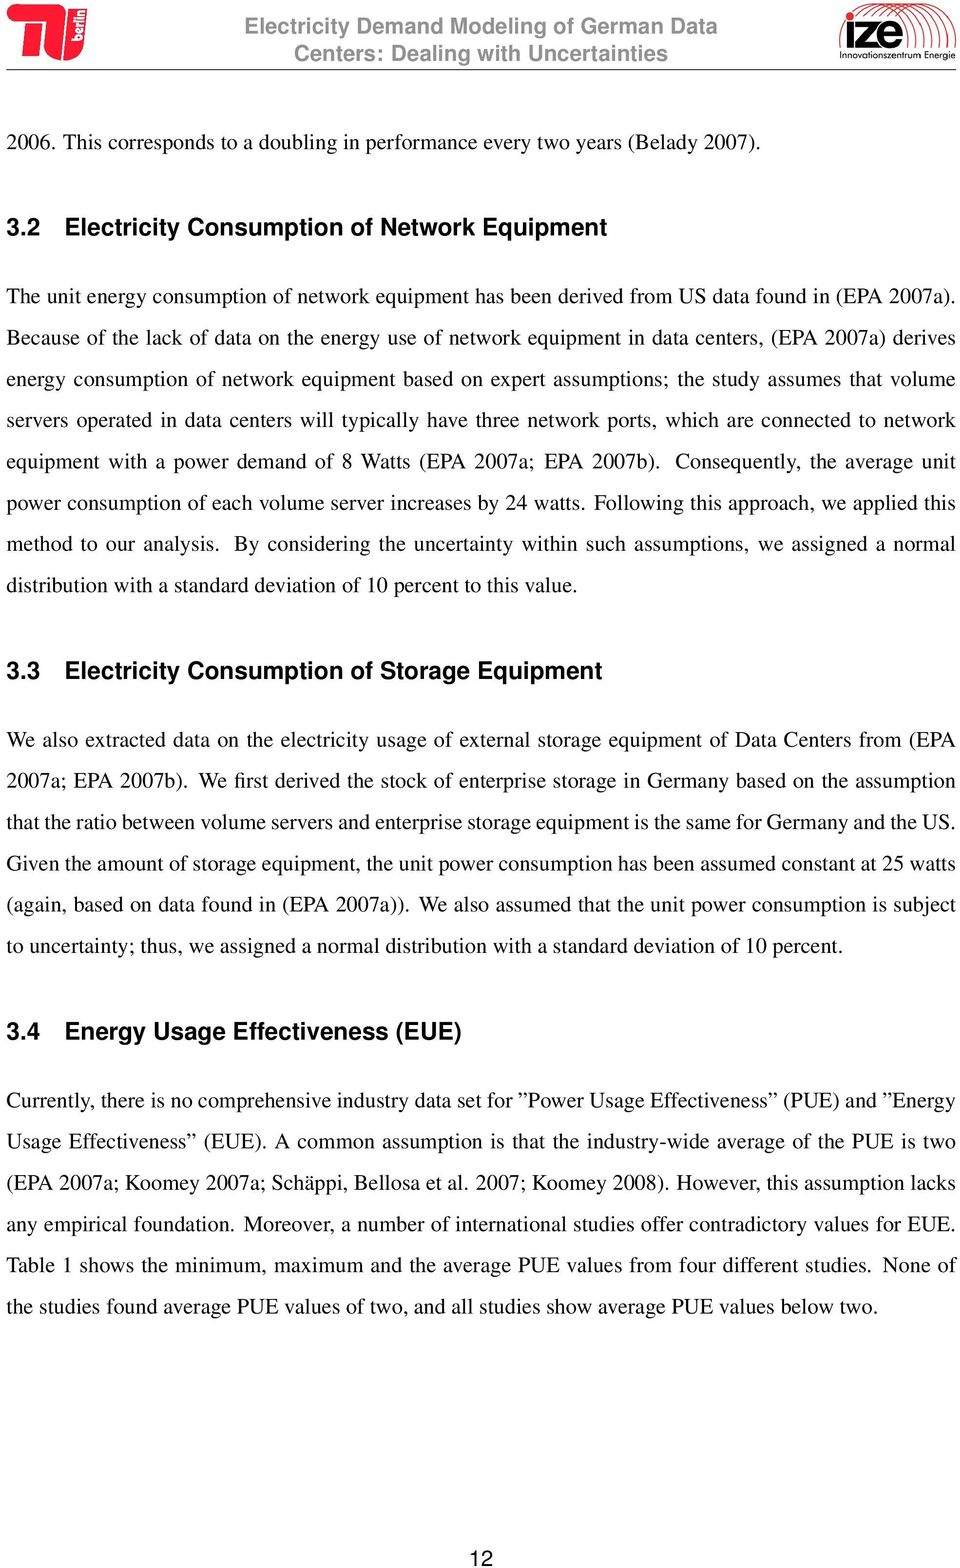 Because of the lack of data on the energy use of network equipment in data centers, (EPA 2007a) derives energy consumption of network equipment based on expert assumptions; the study assumes that